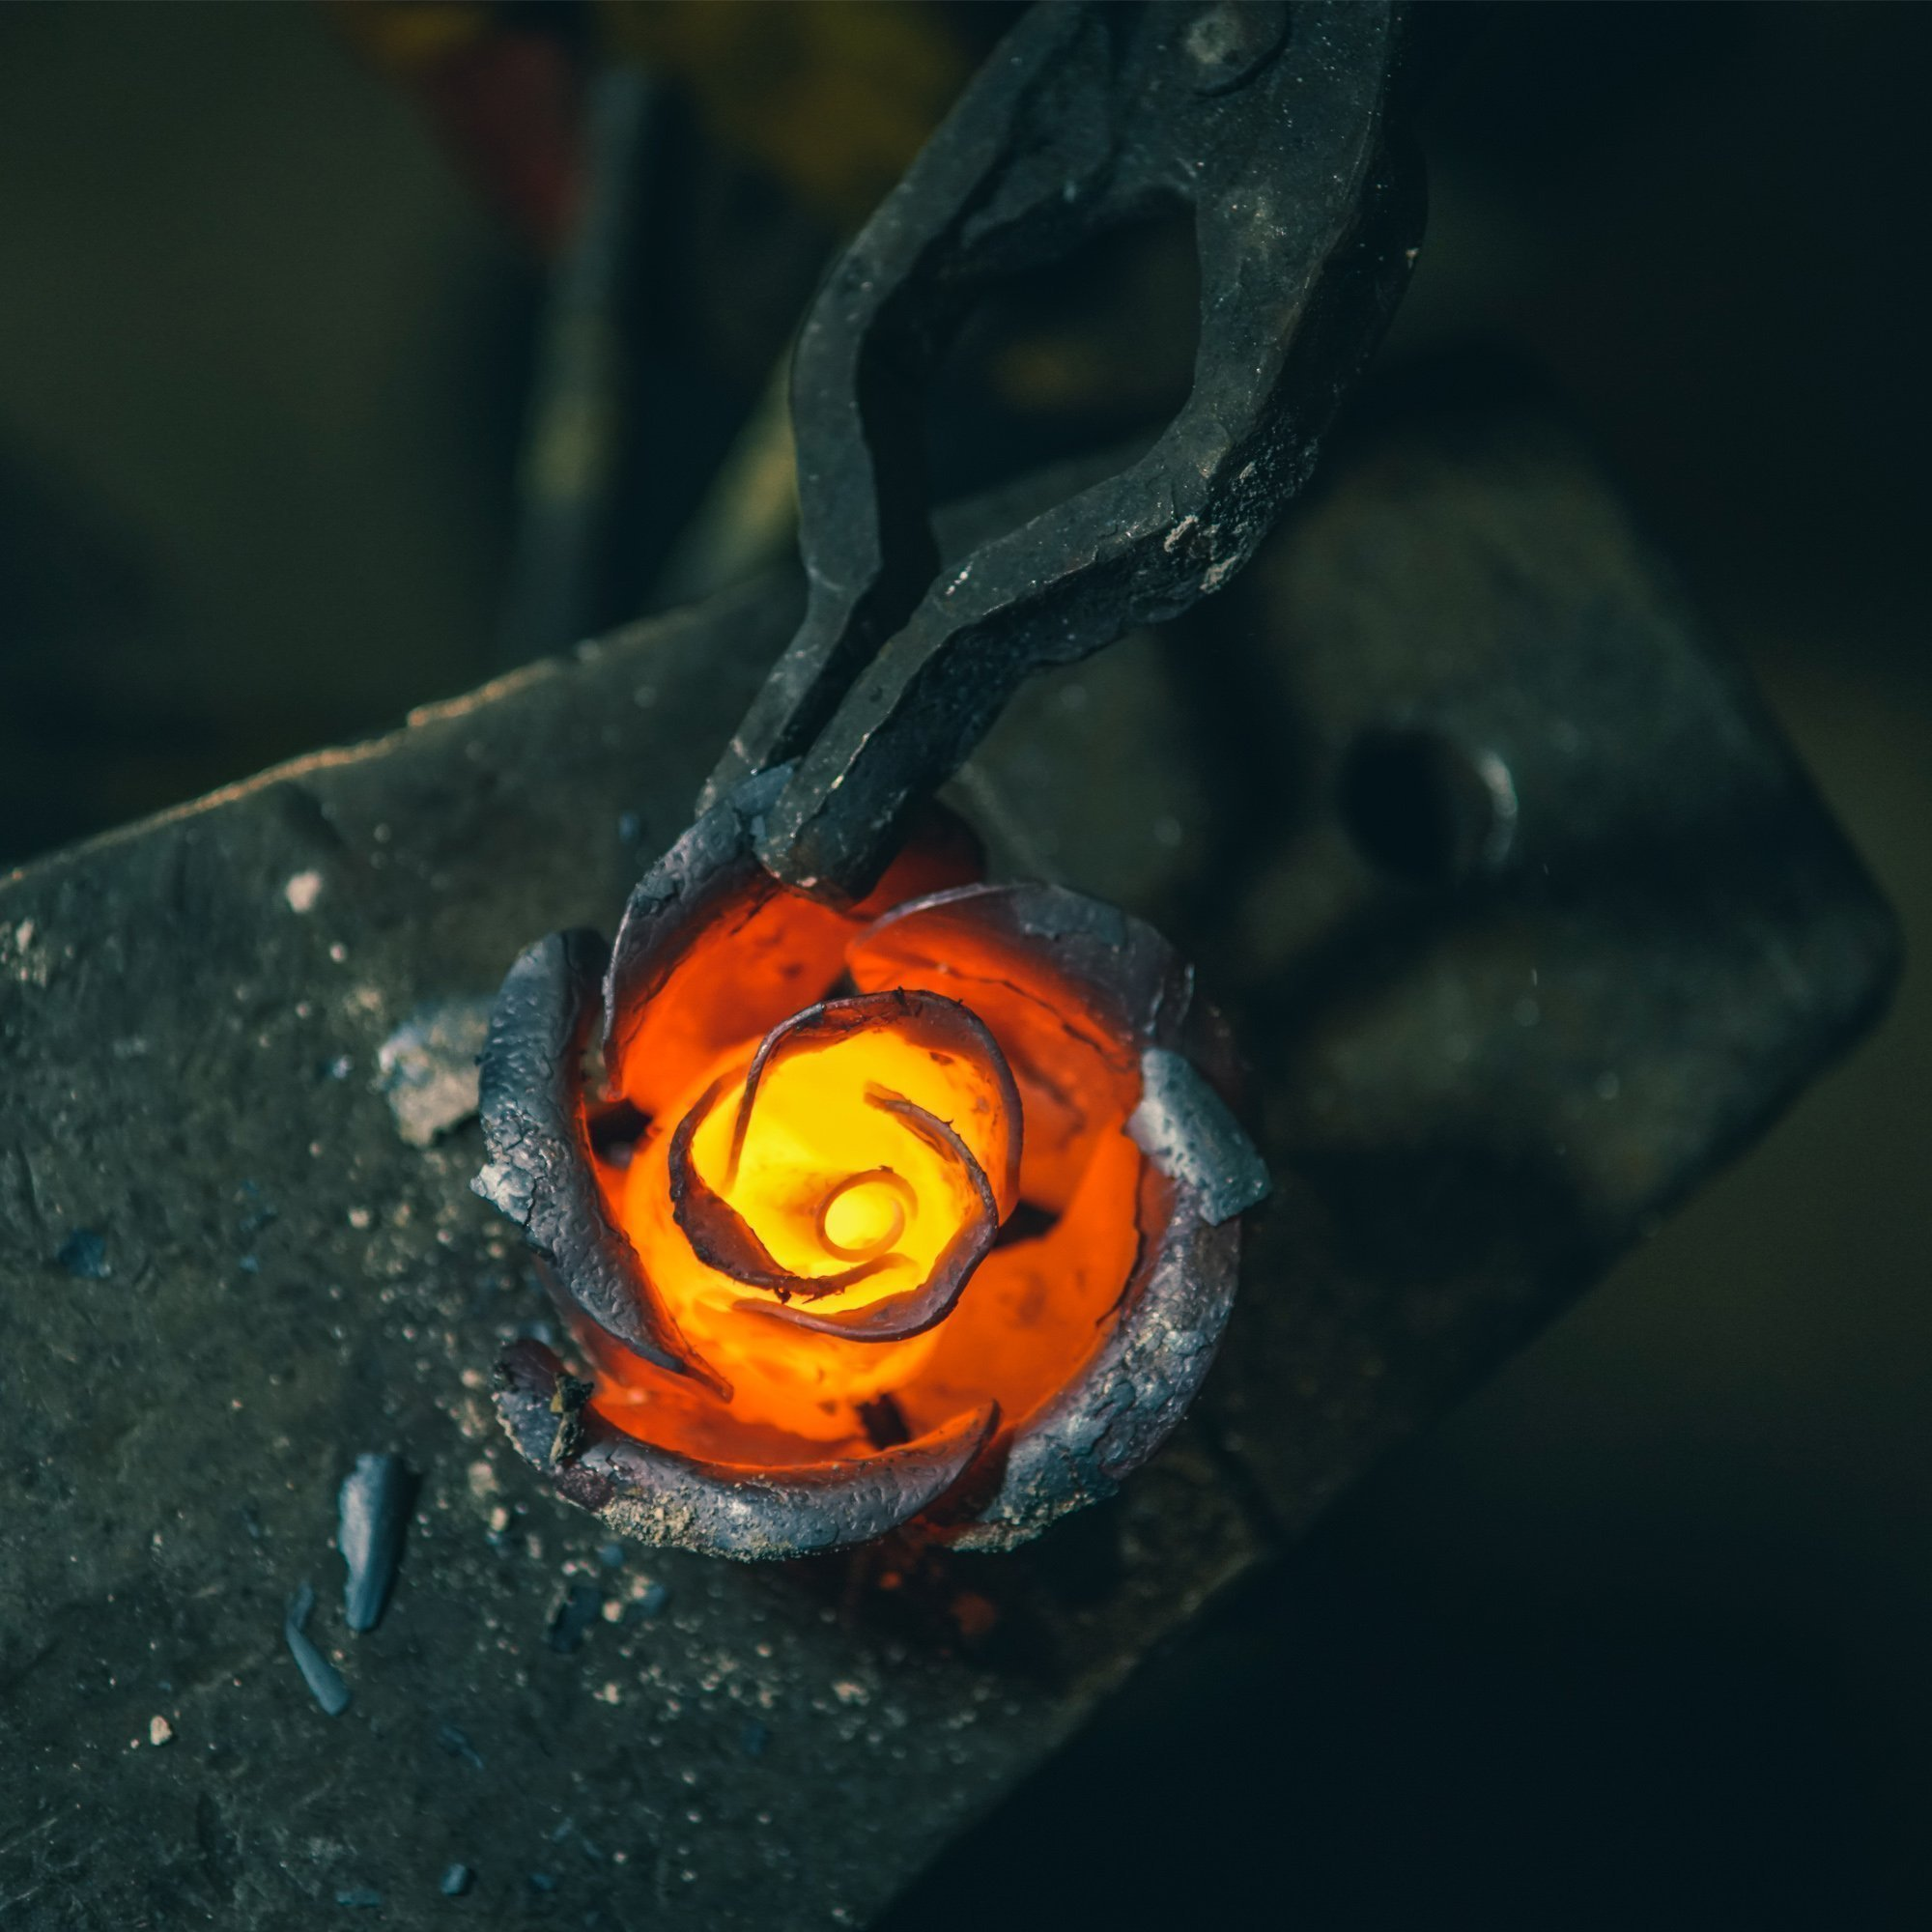 Hand Forged Iron Rose - 11th / 6th Year Wedding Anniversary Gift for Her/Red Metal Rose Steel Rose by MetalArt (Image #6)